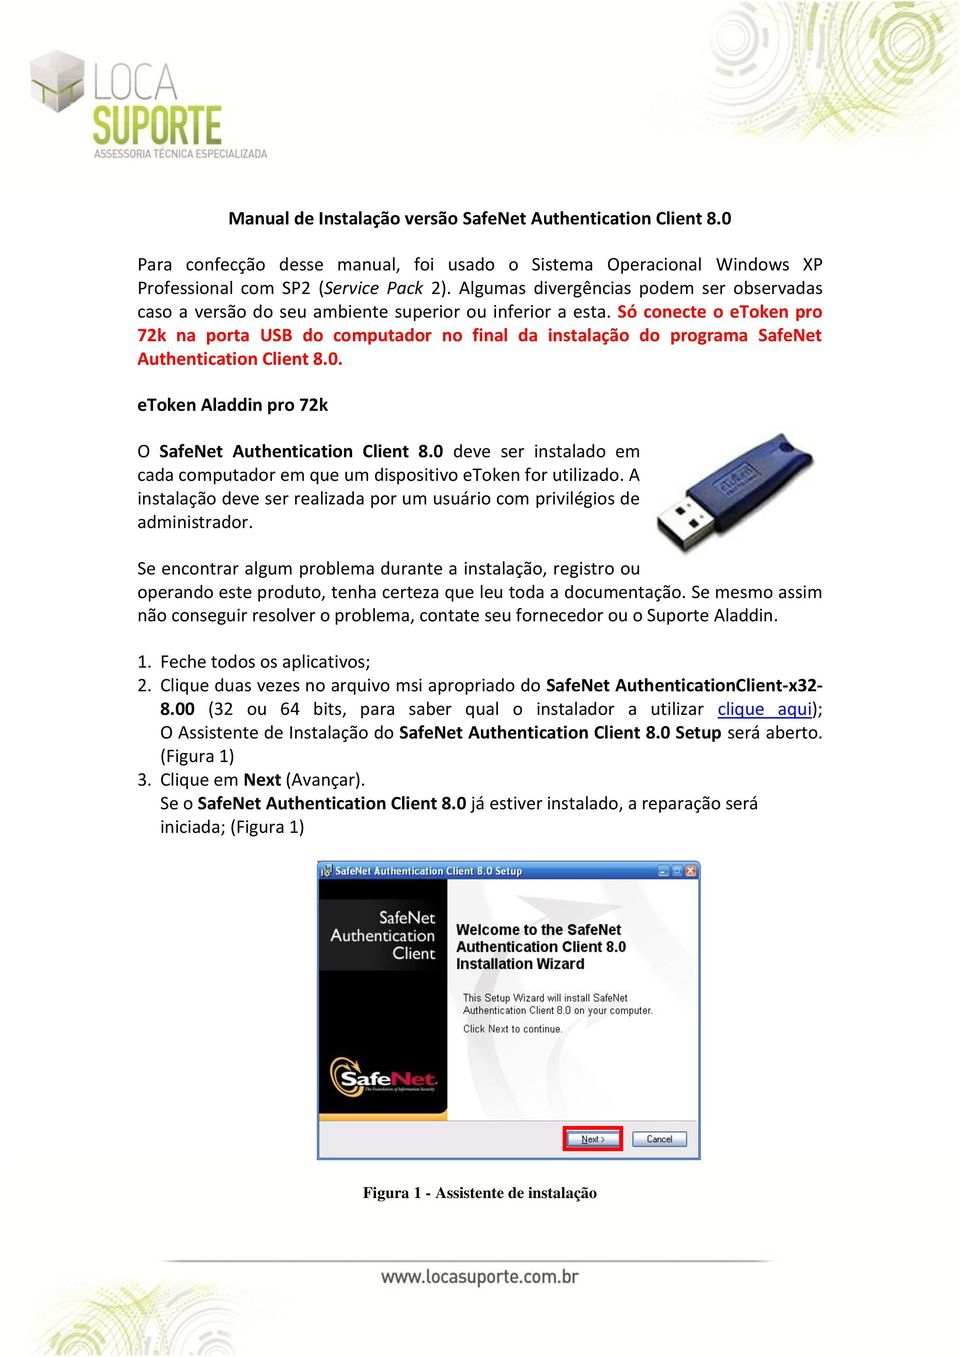 Só conecte o etoken pro 72k na porta USB do computador no final da instalação do programa SafeNet Authentication Client 8.0. etoken Aladdin pro 72k O SafeNet Authentication Client 8.